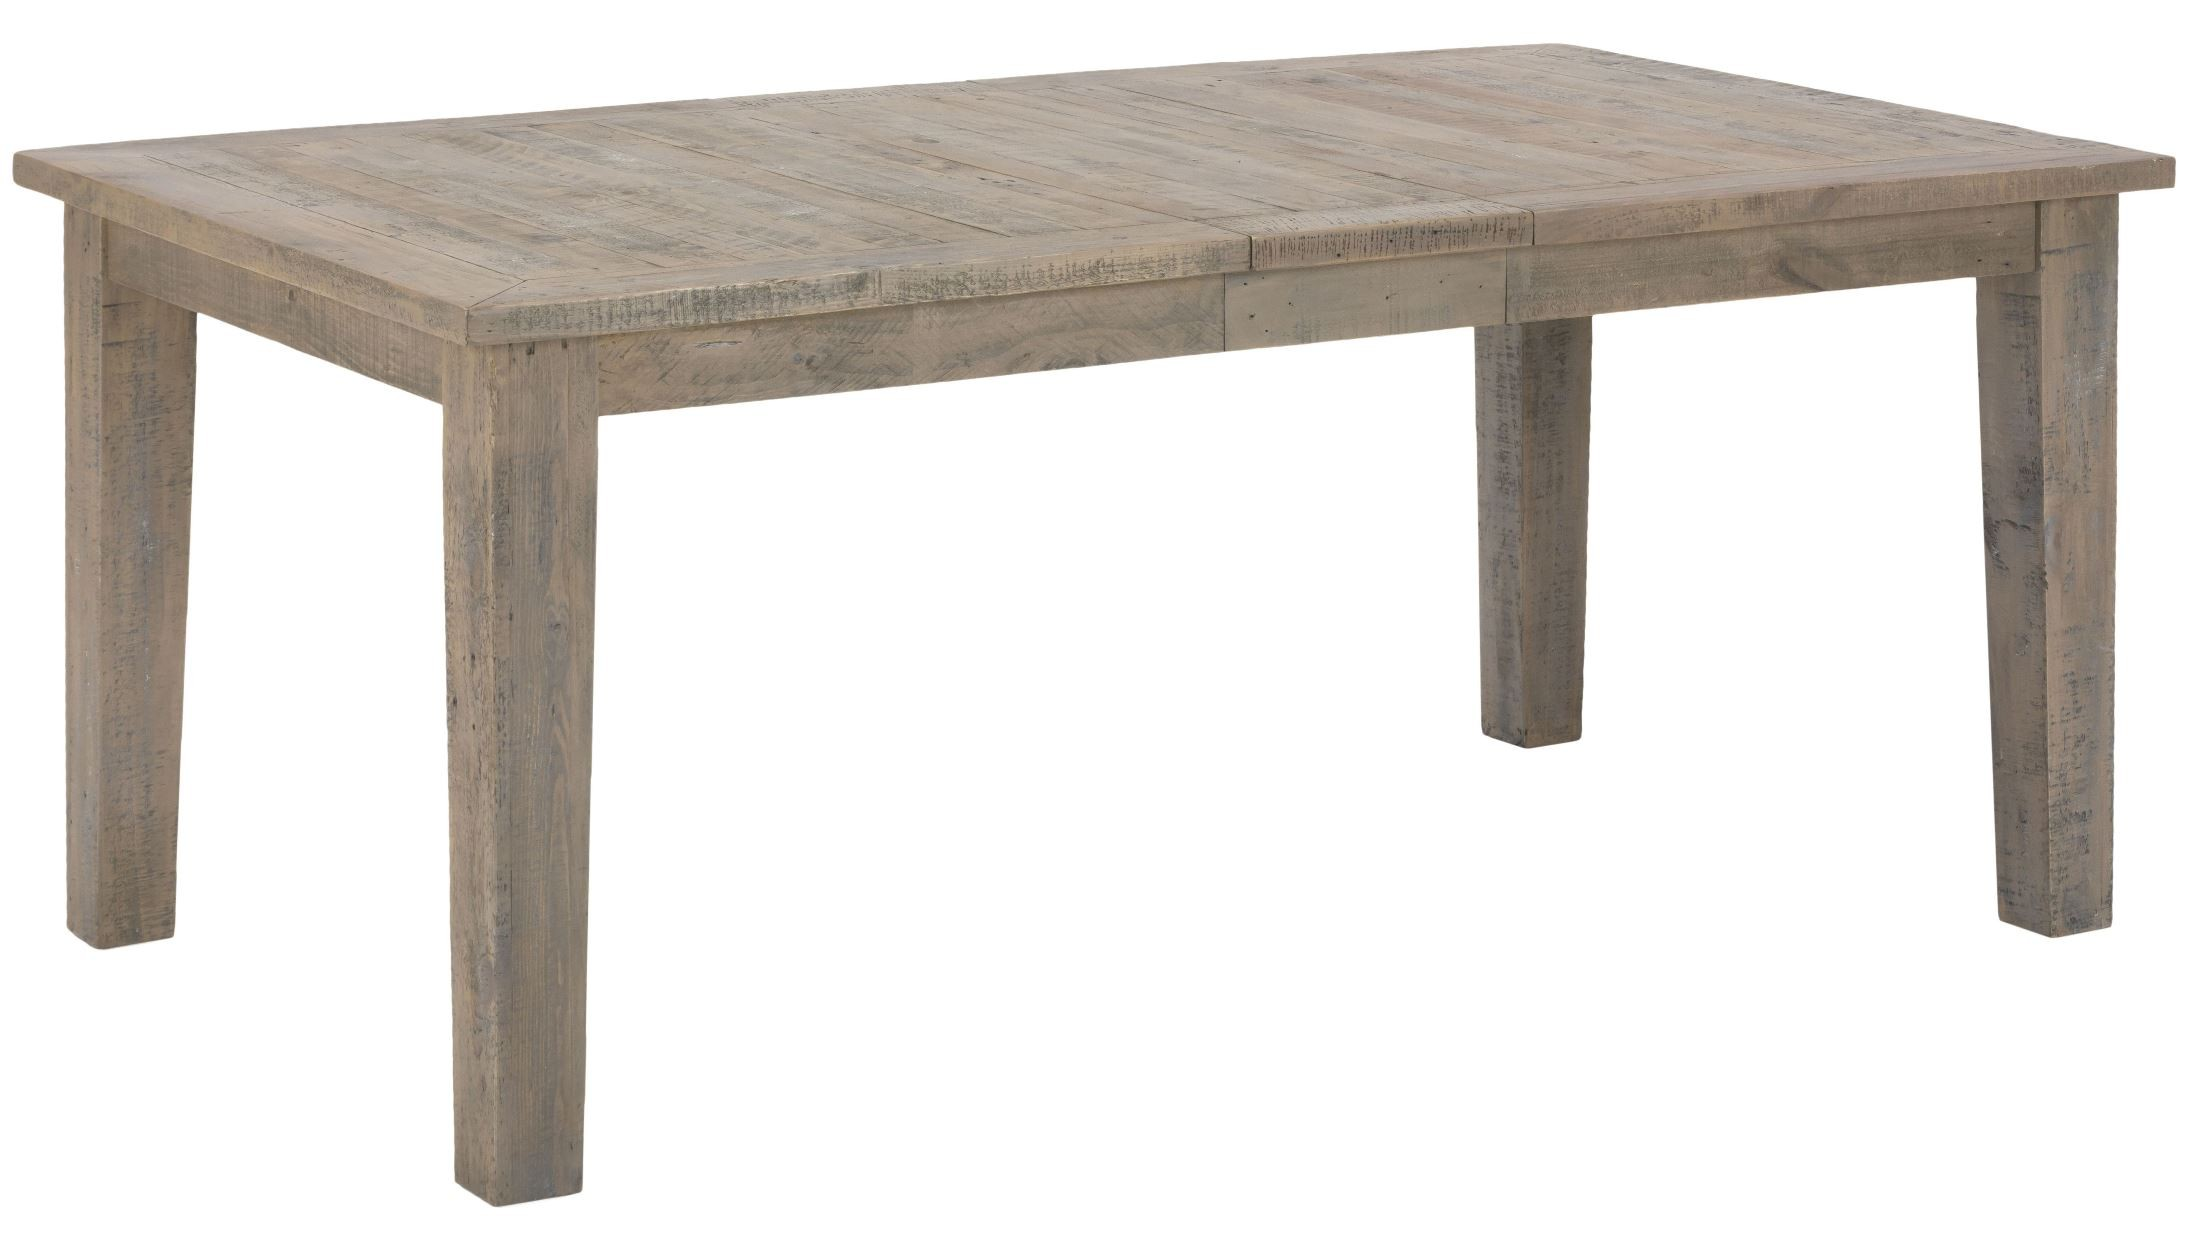 Slater Mill Extendable Rectangular Dining Table From